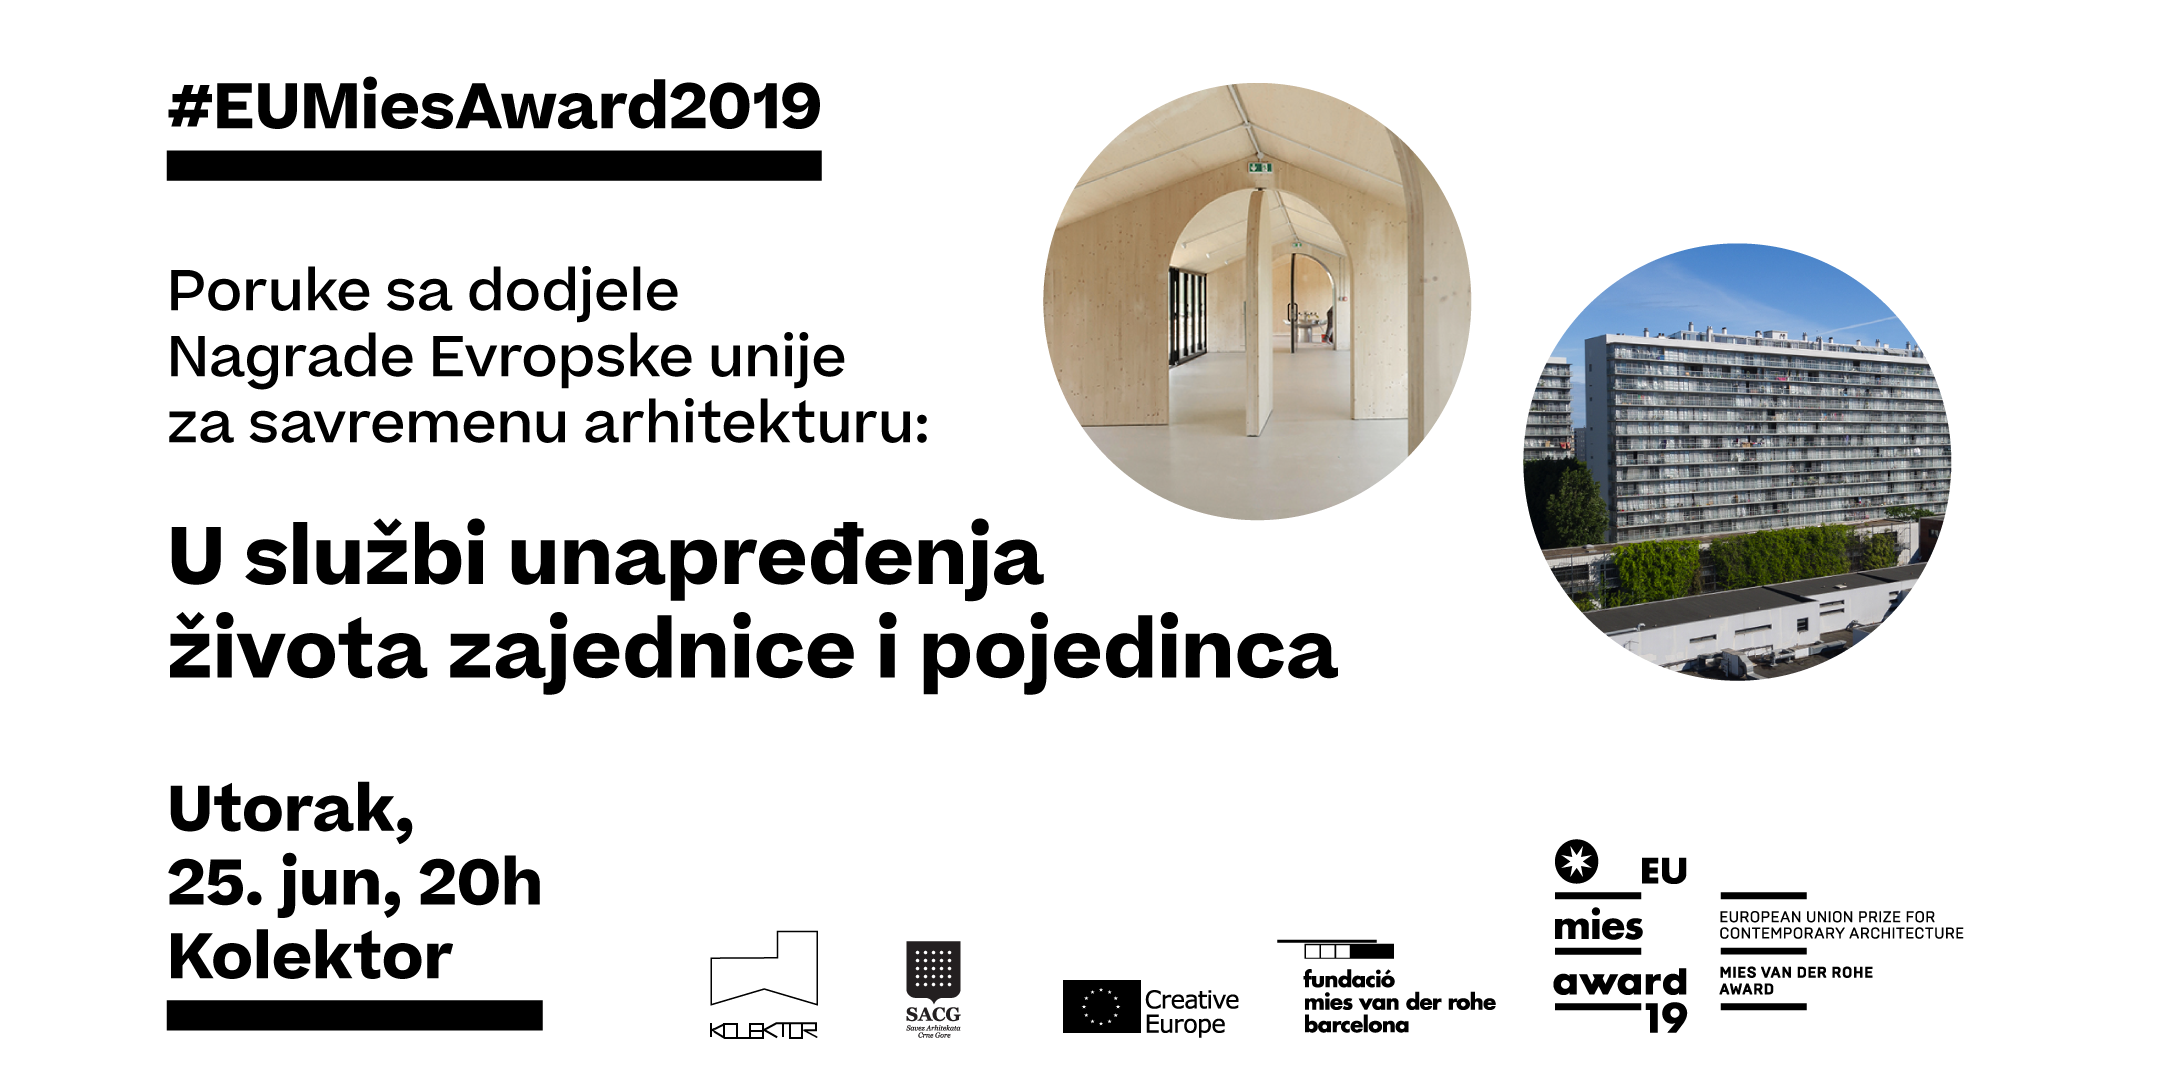 eu-mies-award-2019-lecture—event-cover-0